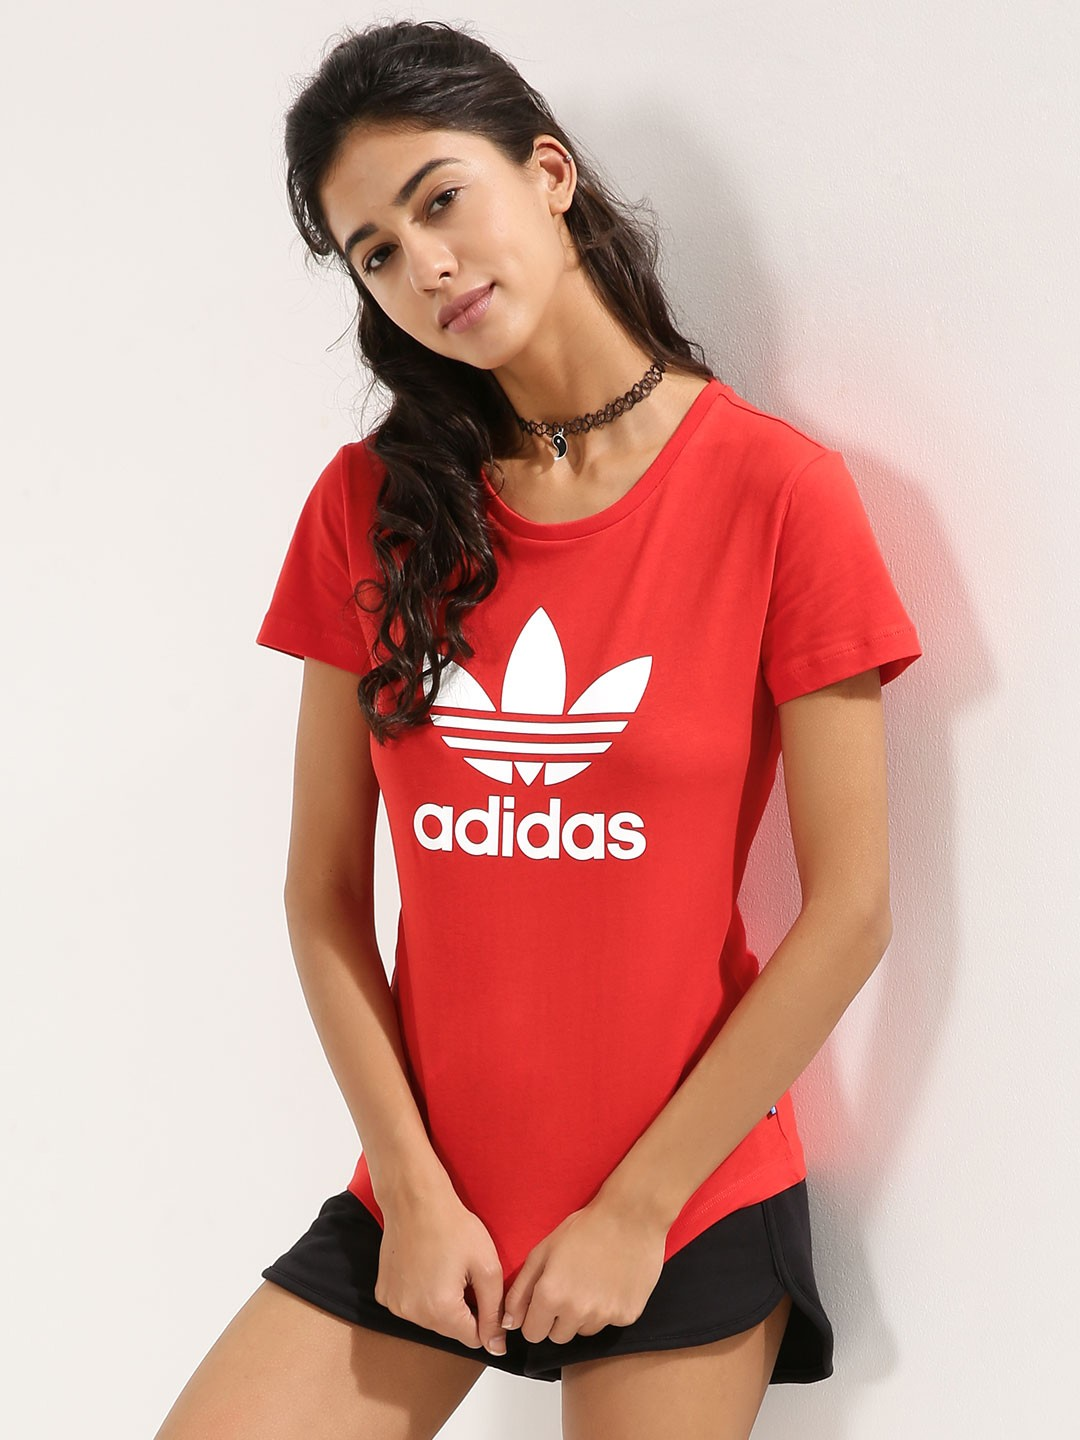 Buy Adidas Clothes Online India